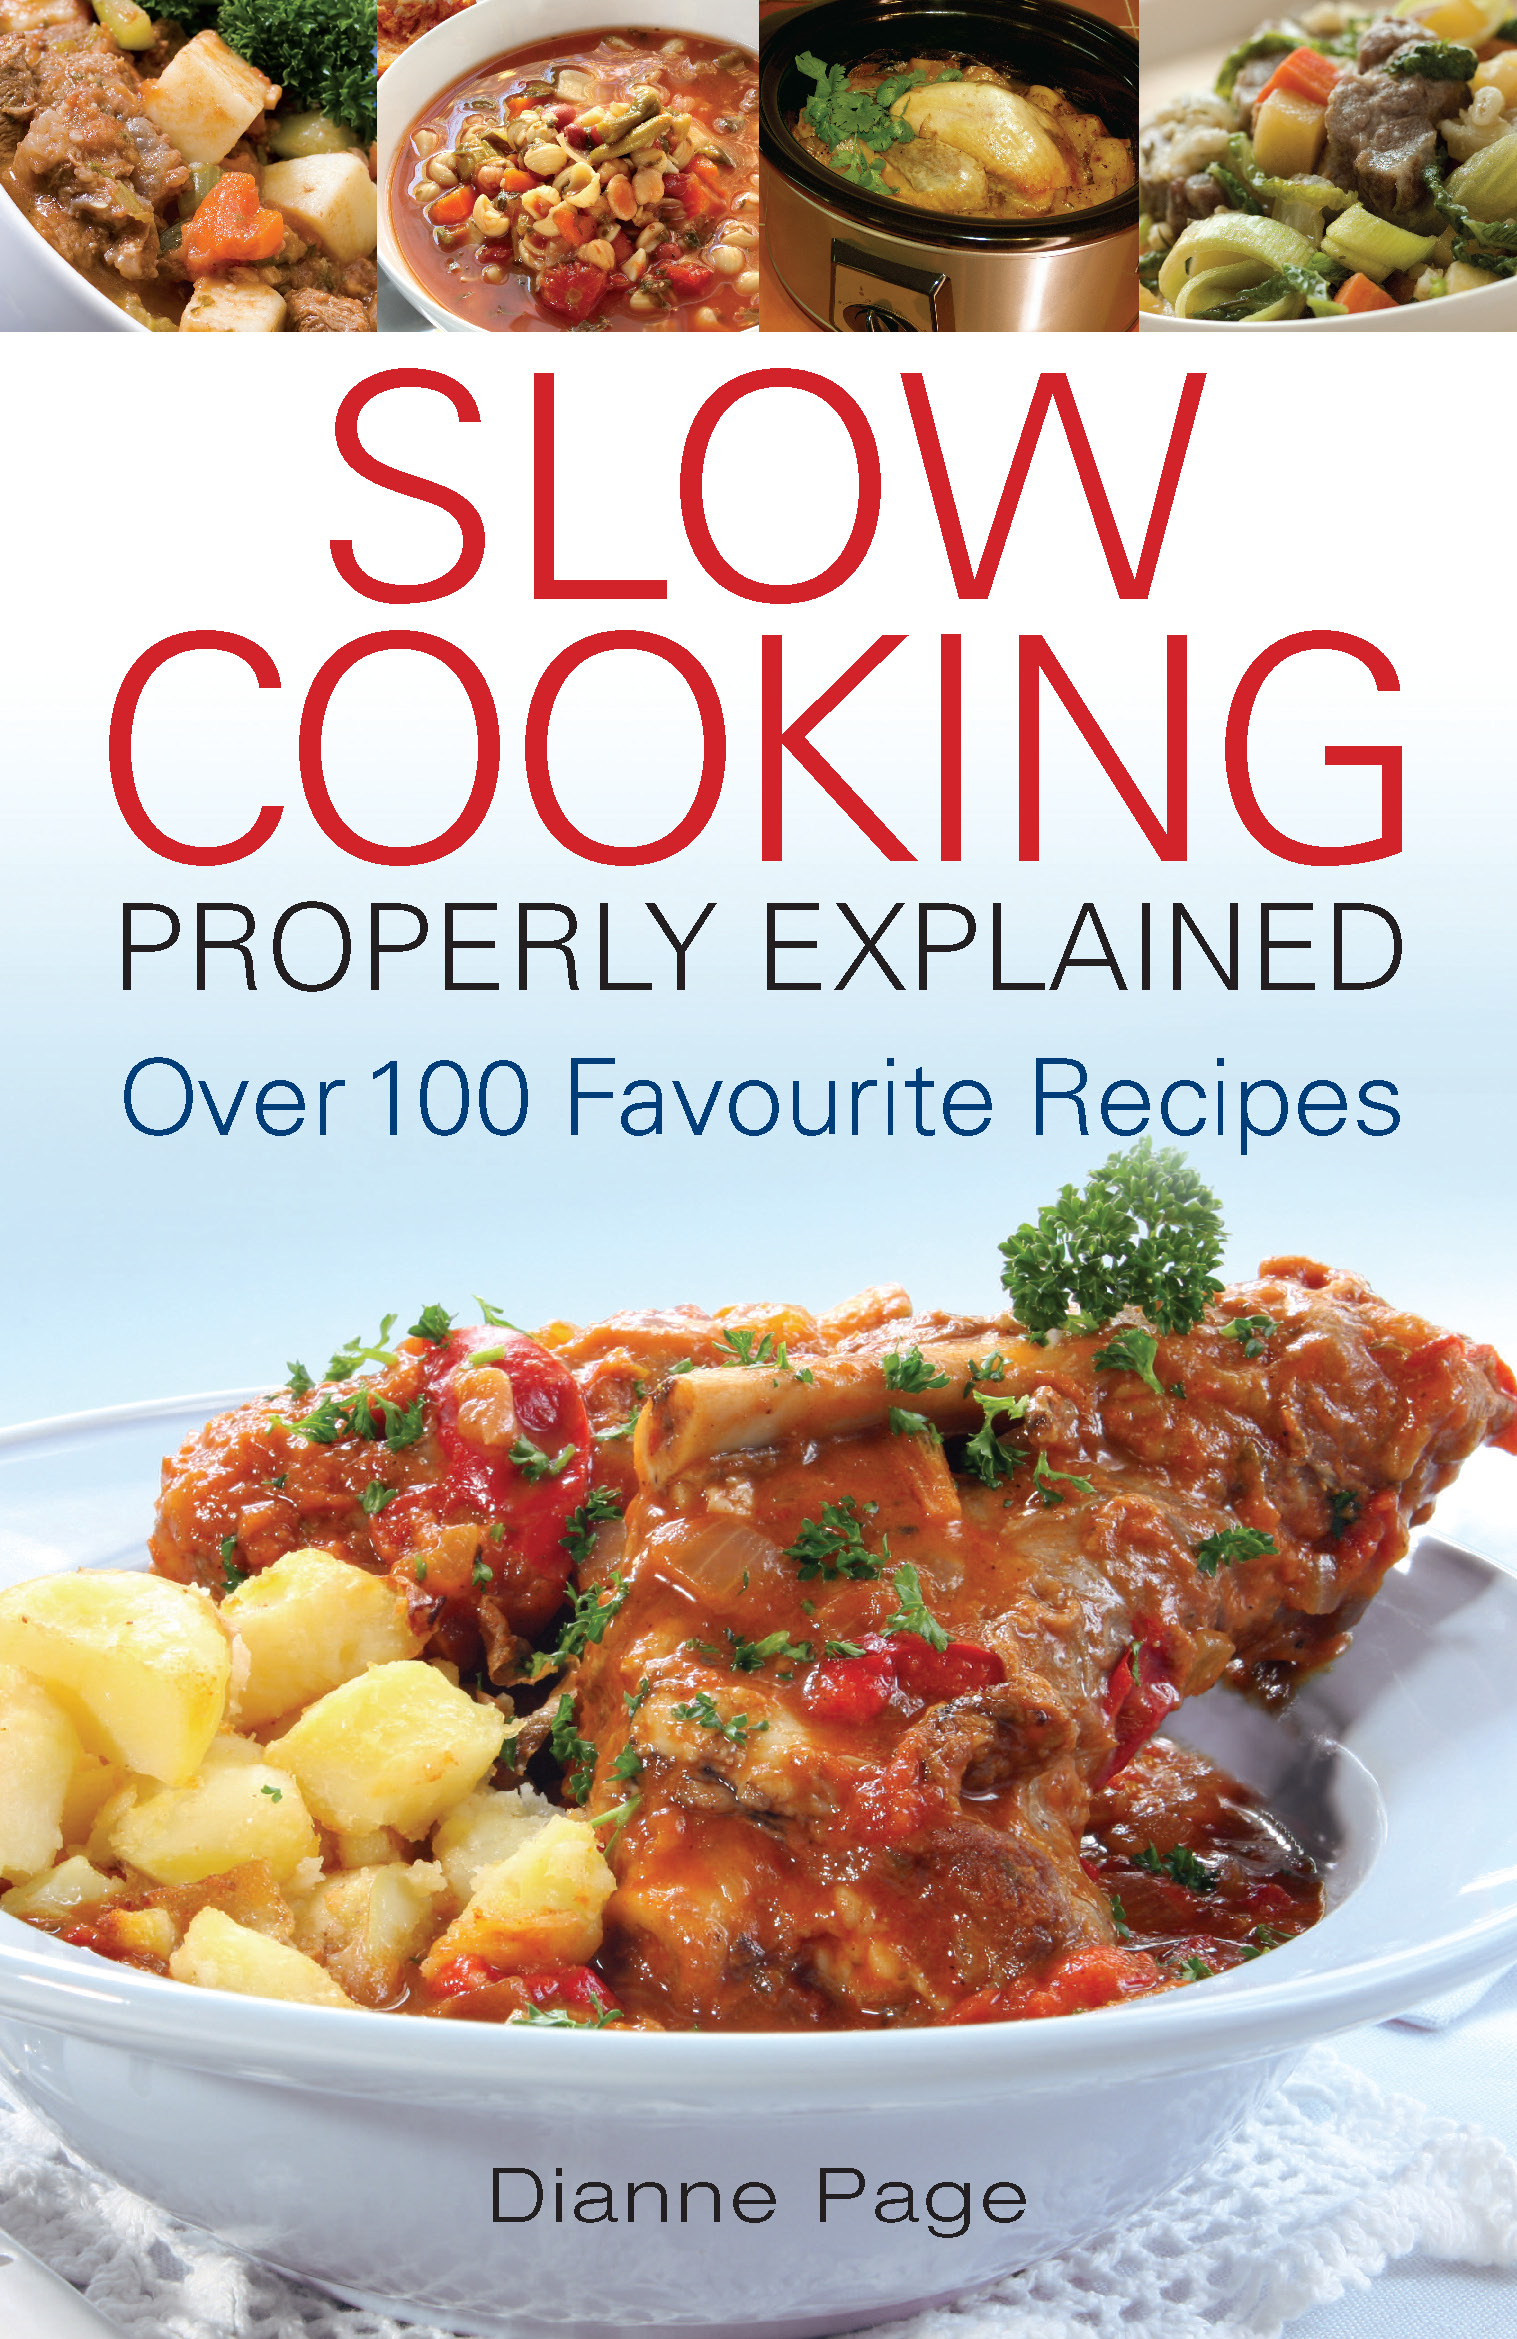 Slow Cooking Properly Explained By: Dianne Page